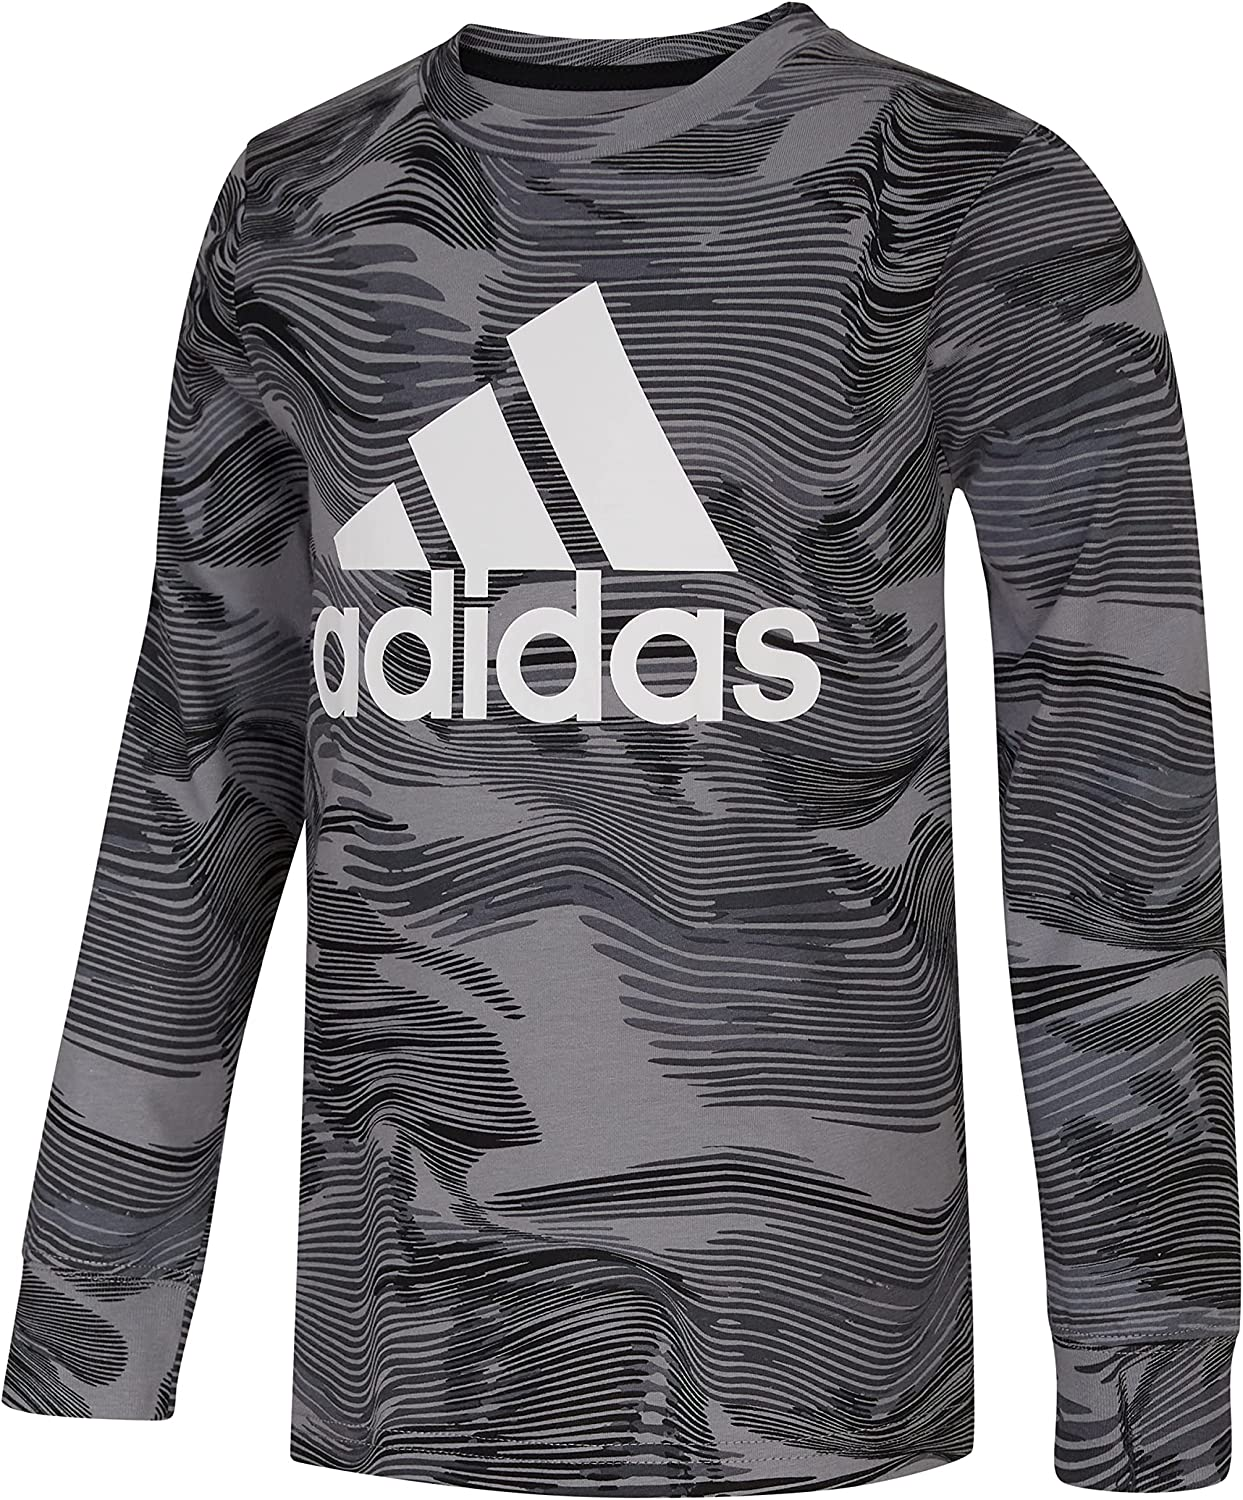 adidas Boys' Long Sleeve Warped Camo Allover Print Tee: Clothing, Shoes & Jewelry